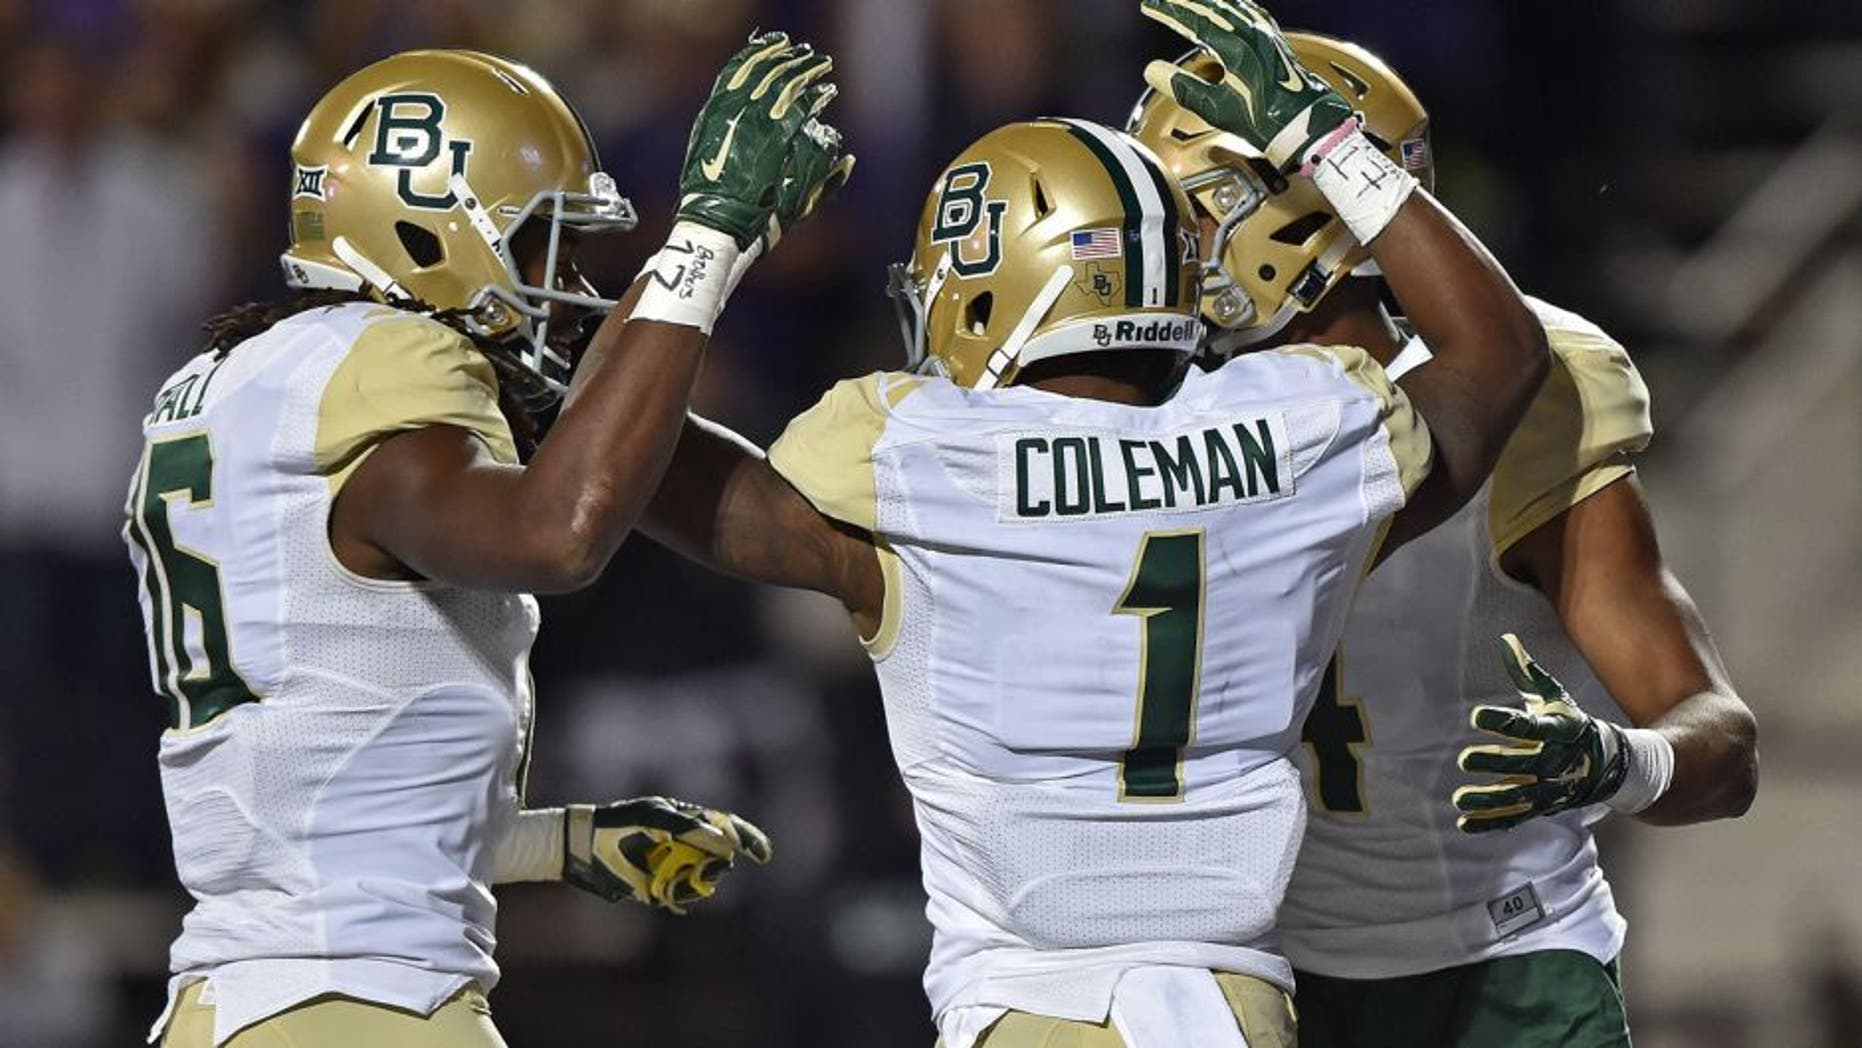 MANHATTAN, KS - NOVEMBER 05: Wide receiver Corey Coleman #1 of the Baylor Bears celebrates with teammates after scoring a touchdown against the Kansas State Wildcats during the first half on November 5, 2015 at Bill Snyder Family Stadium in Manhattan, Kansas. (Photo by Peter G. Aiken/Getty Images)